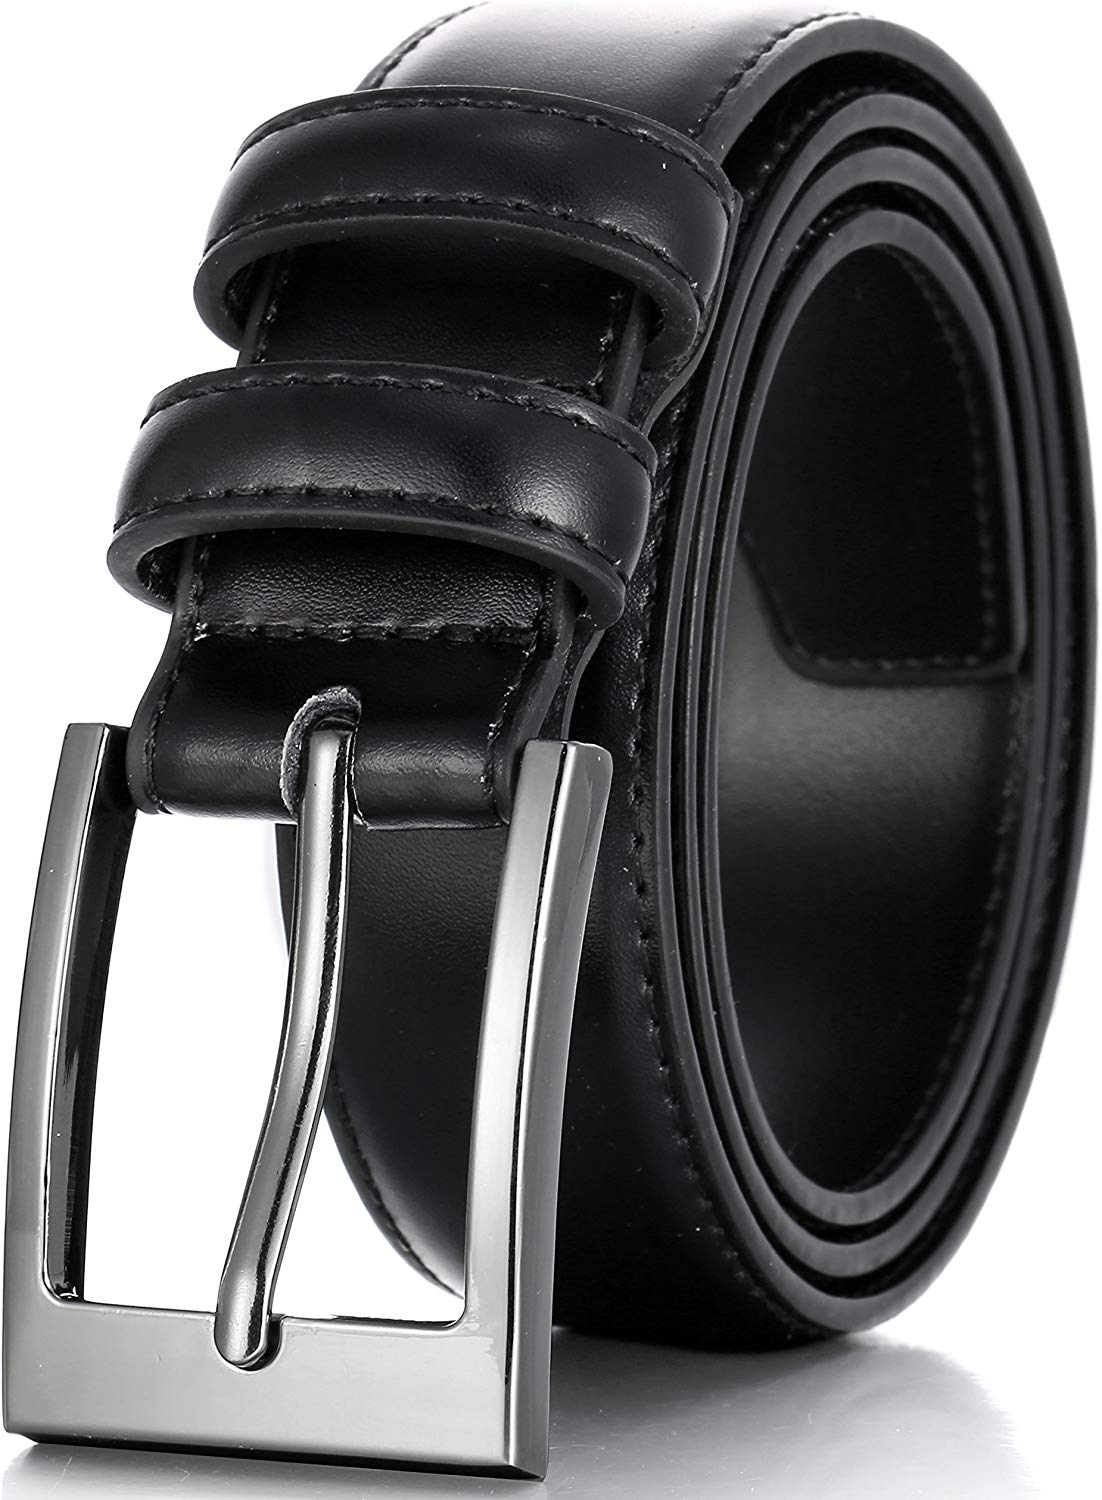 Black leather belt with silver buckle from Marino Avenue